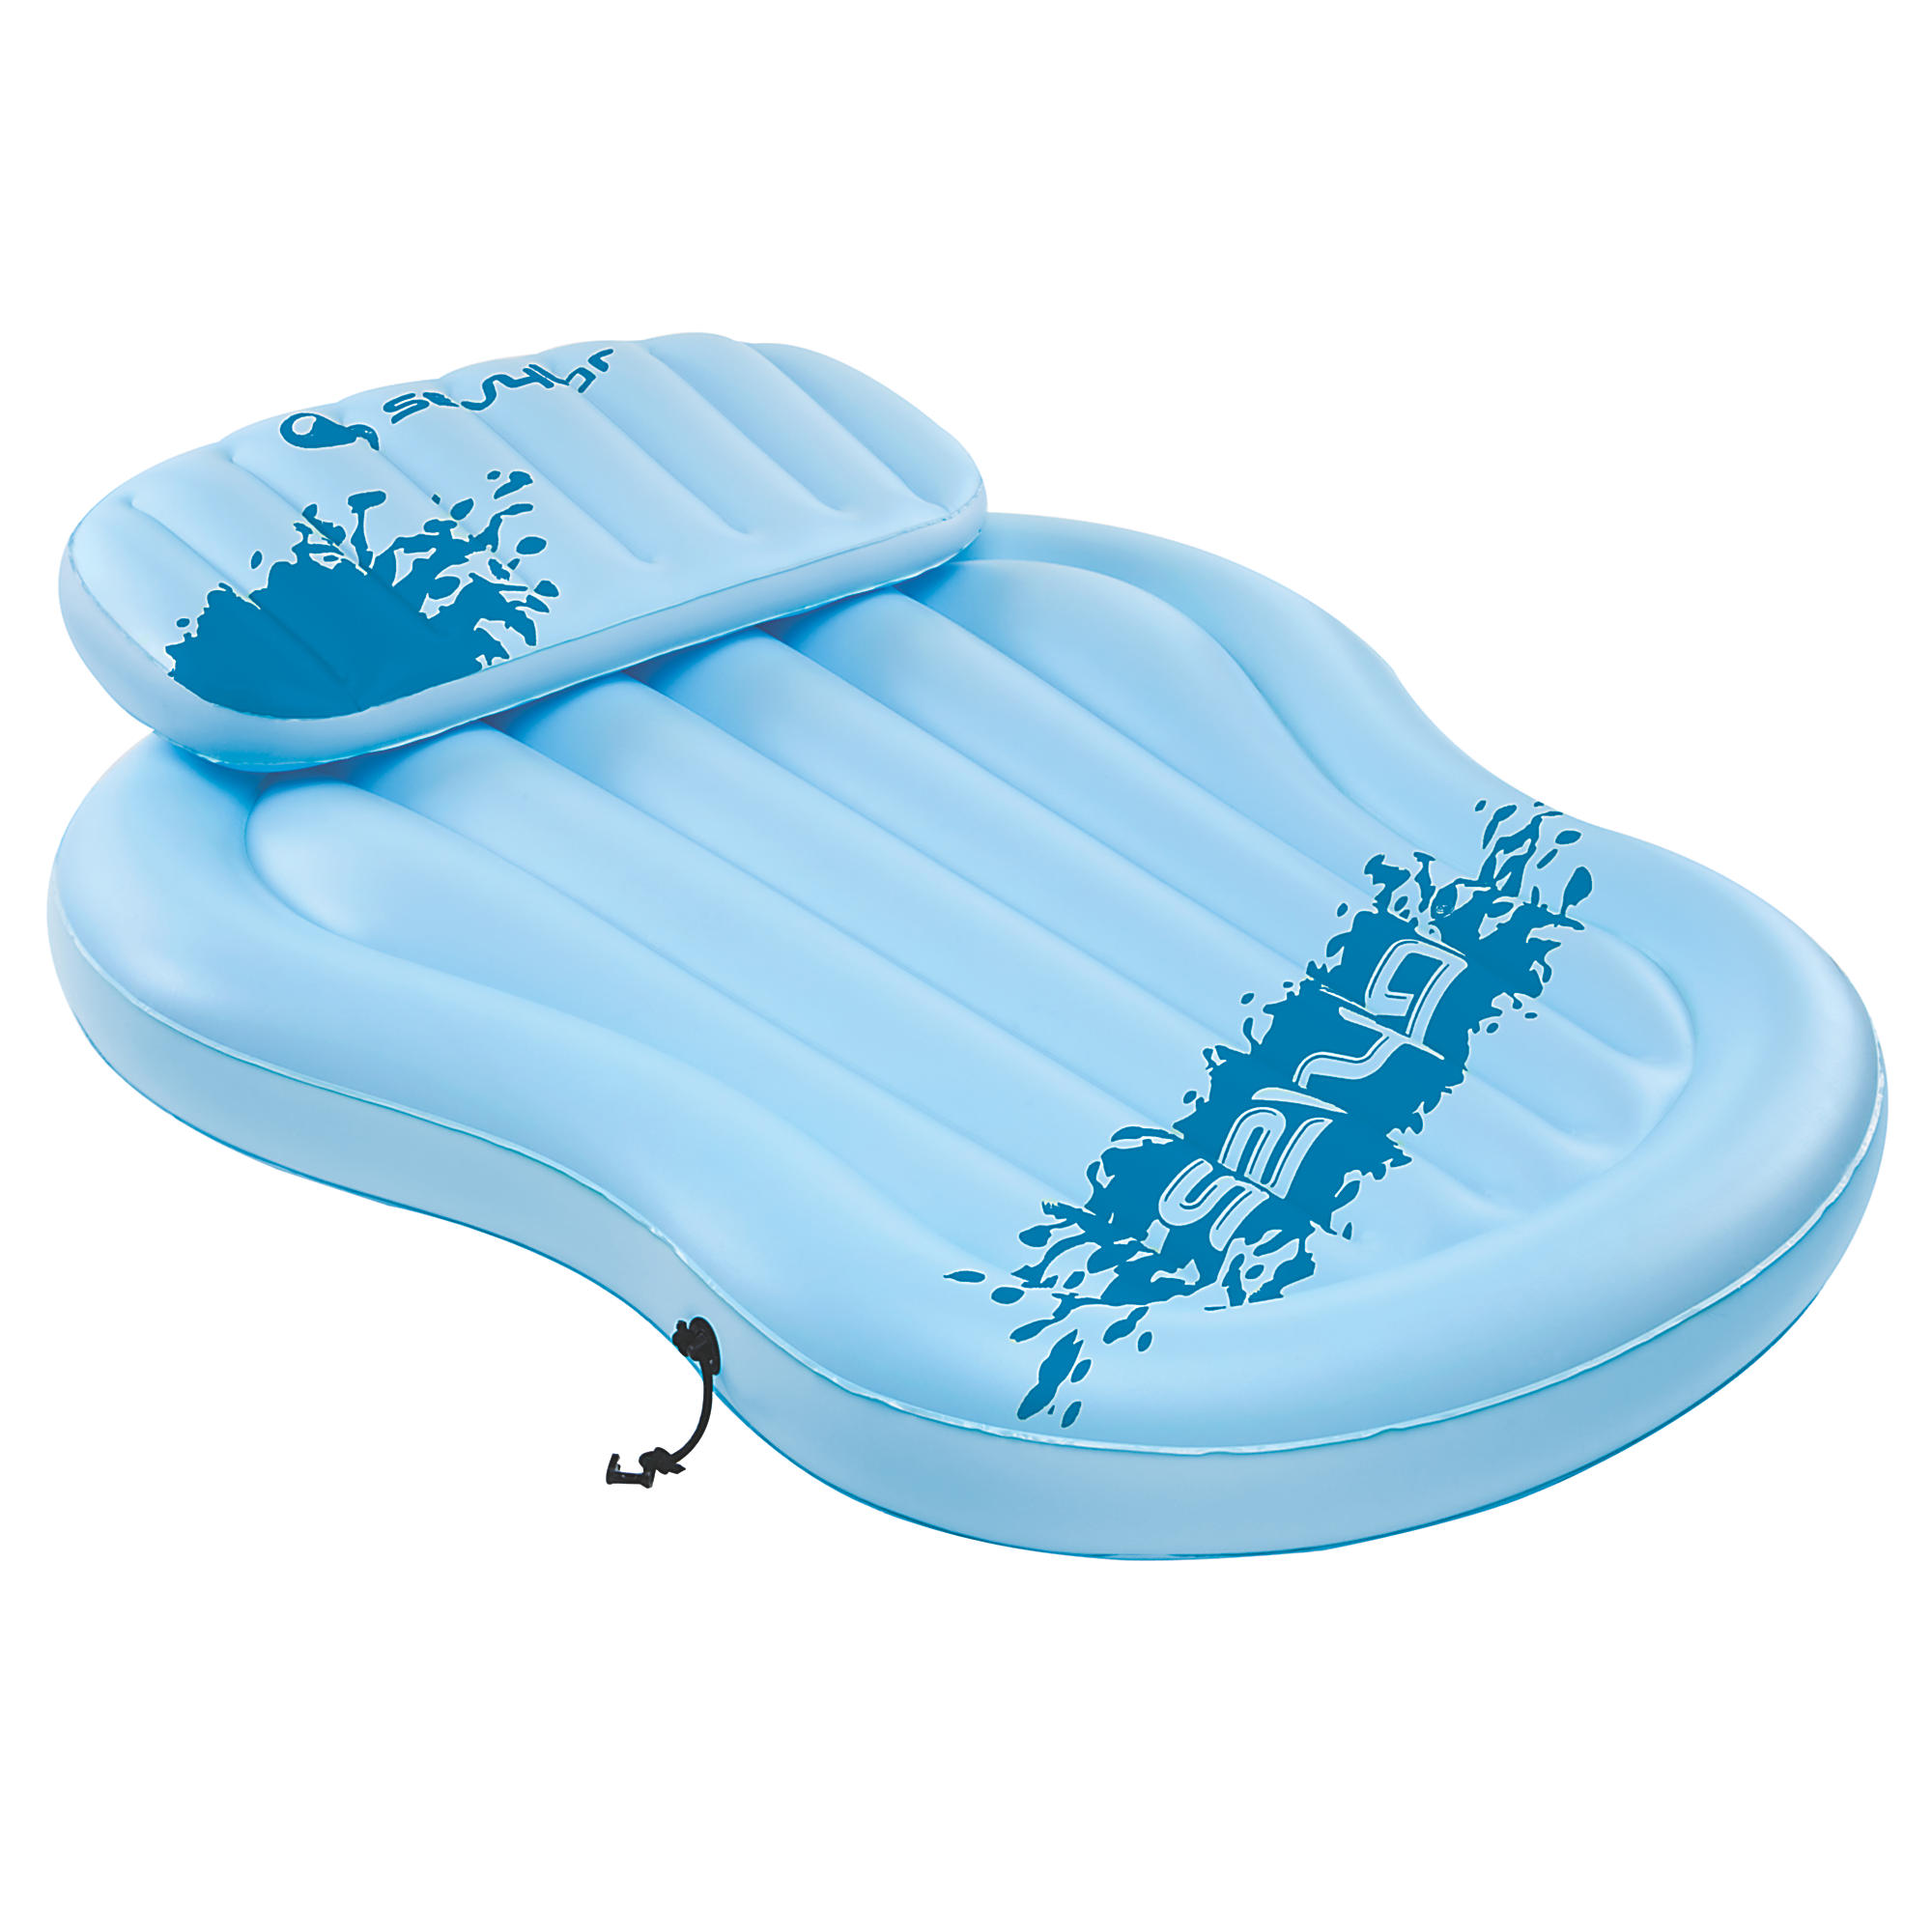 Deluxe Water Lounger